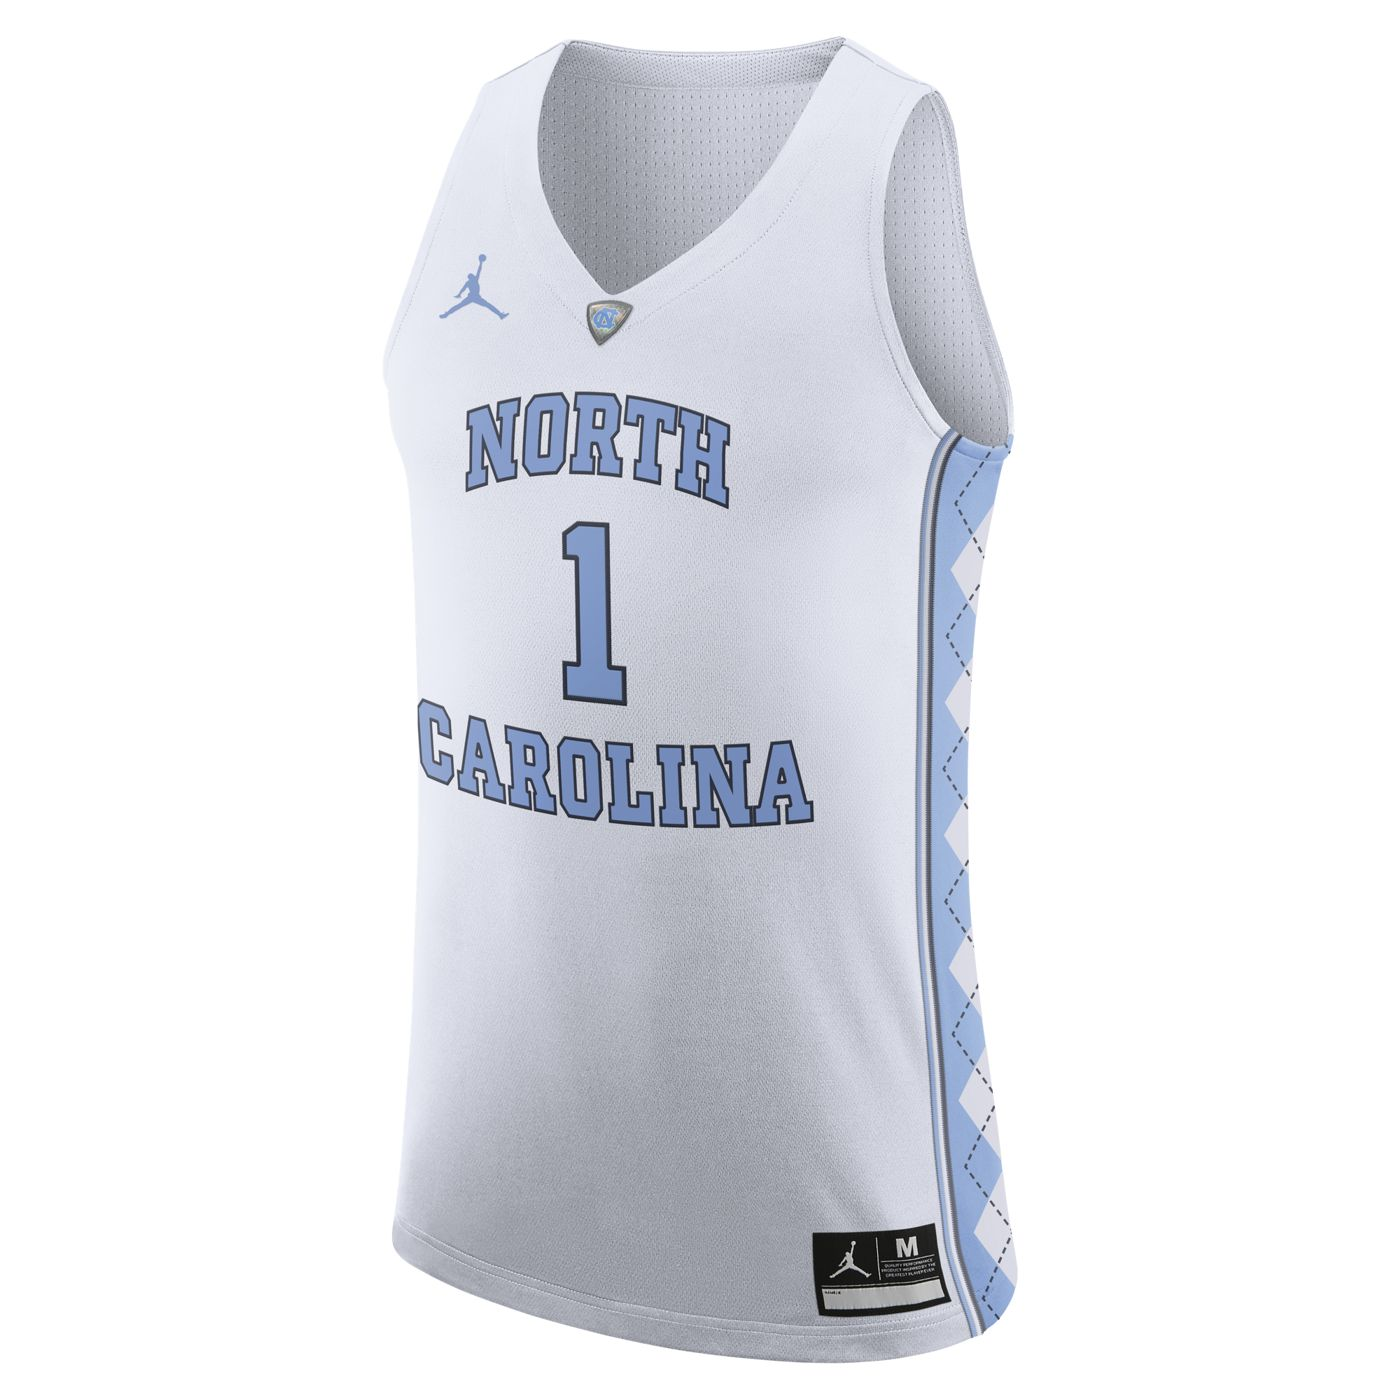 detailed look 59e5e 20d9f Nike #1 Authentic Basketball Jersey (White) by Nike